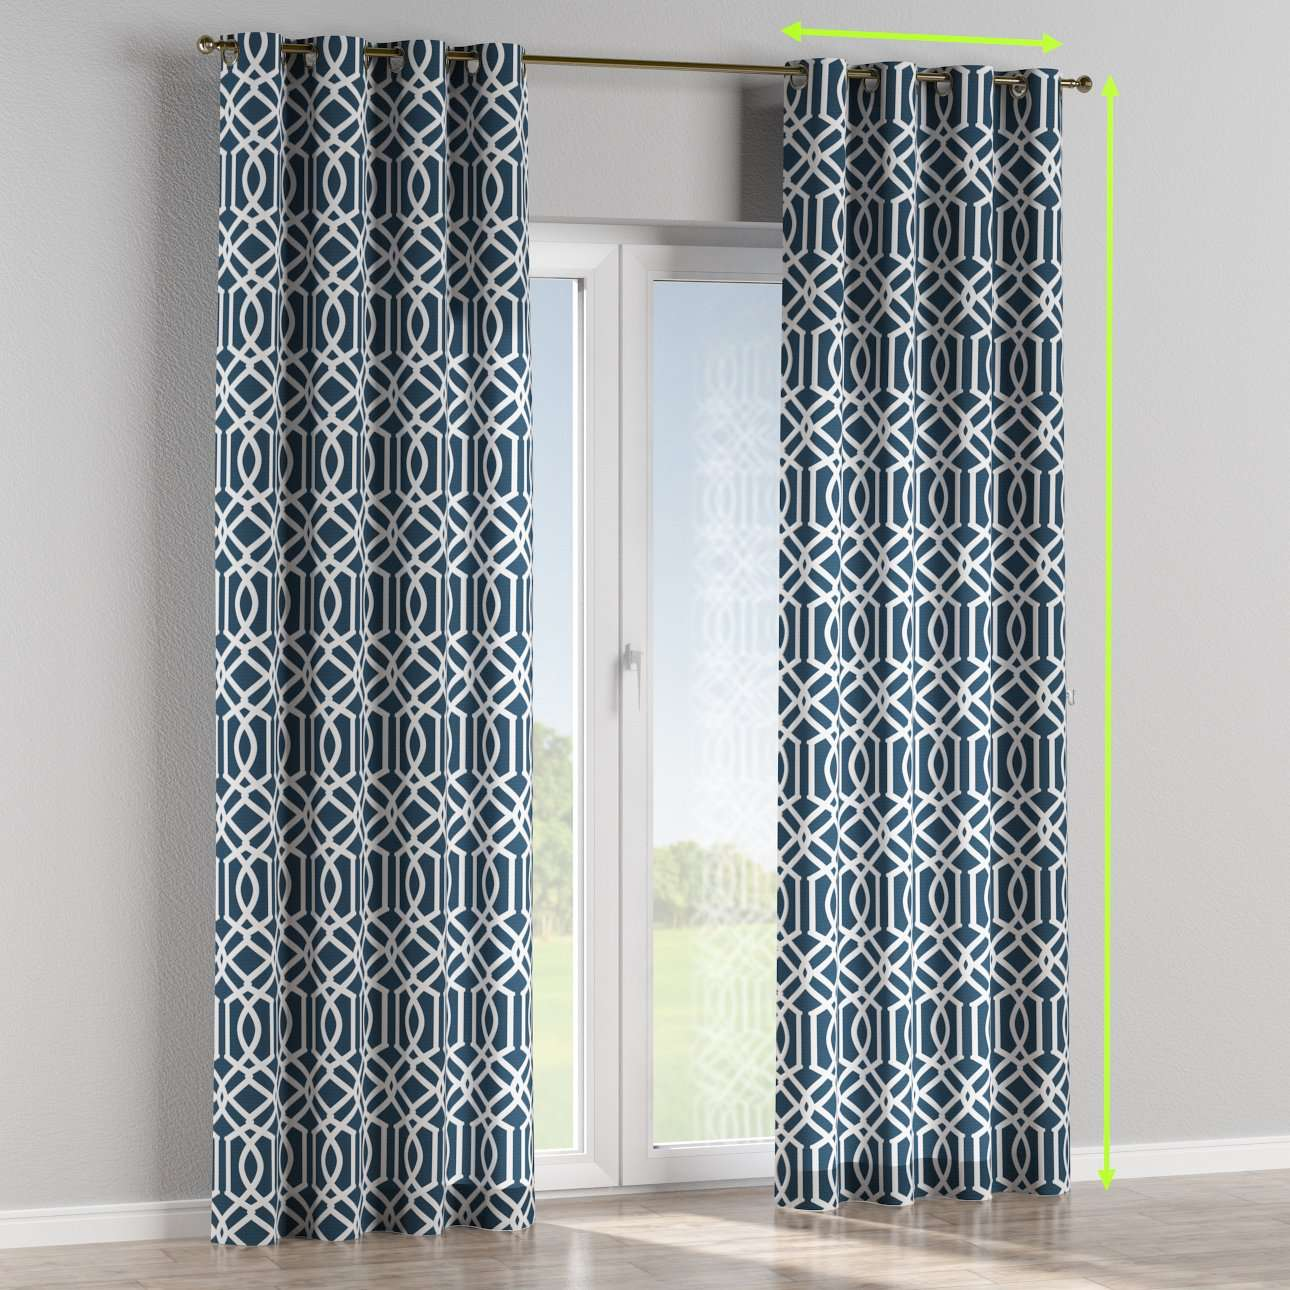 Eyelet curtains in collection Comic Book & Geo Prints, fabric: 135-10